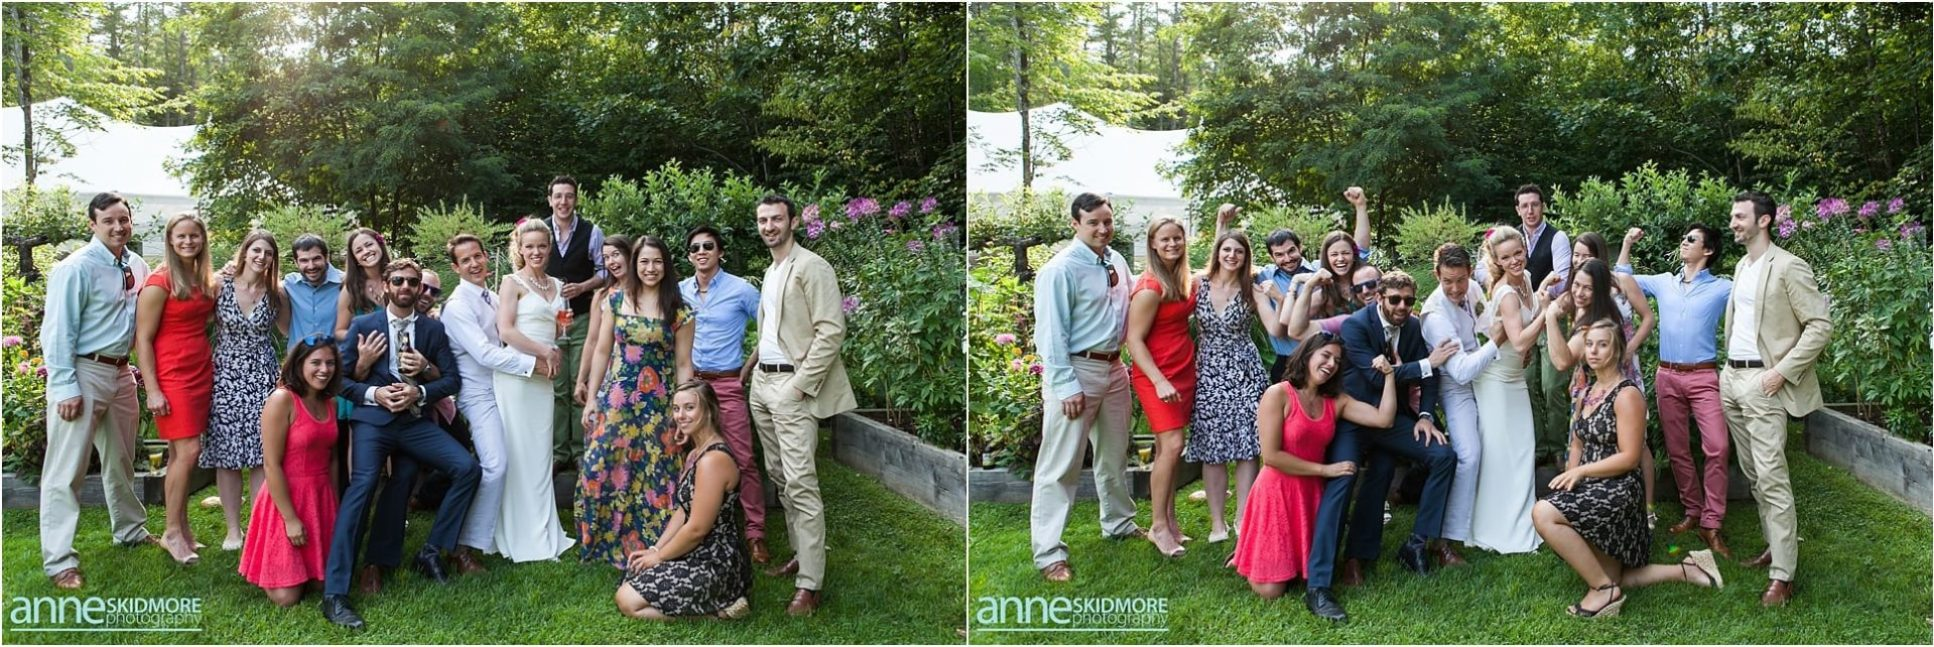 Hardy_Farm_Wedding_0037